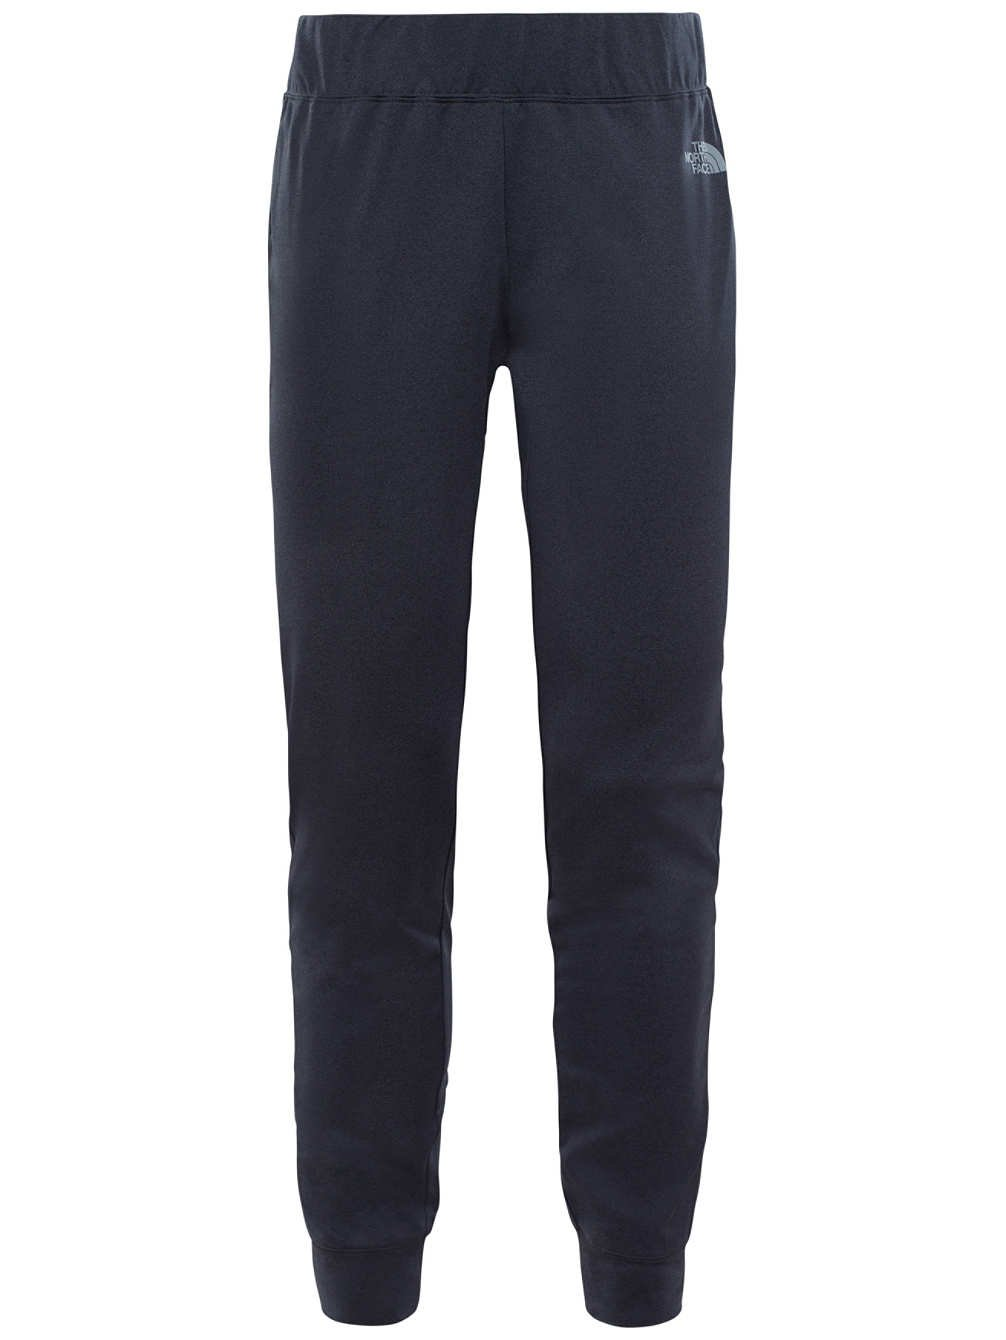 THE NORTH FACE W Fave Lite Pant-EU Pantalones, Mujer